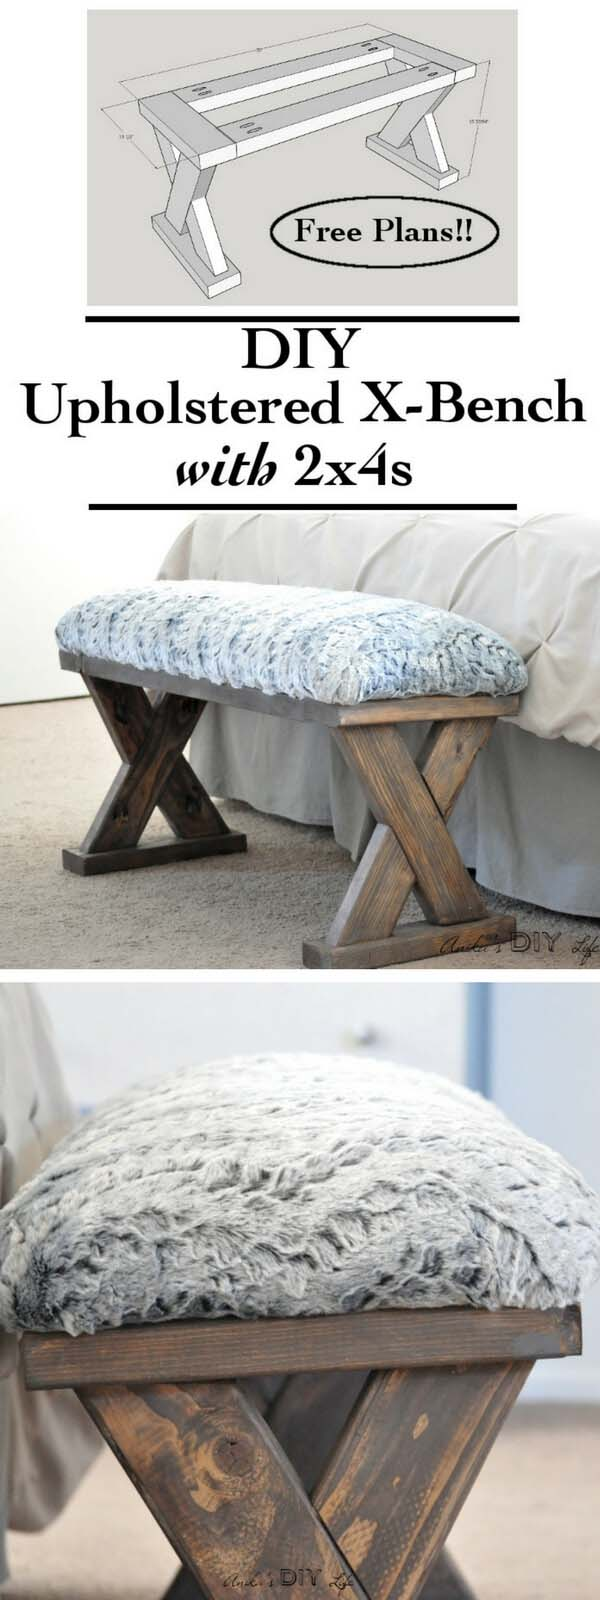 Make the Perfect DIY Upholstered X-Bench #diy #weekendproject #decorhomeideas